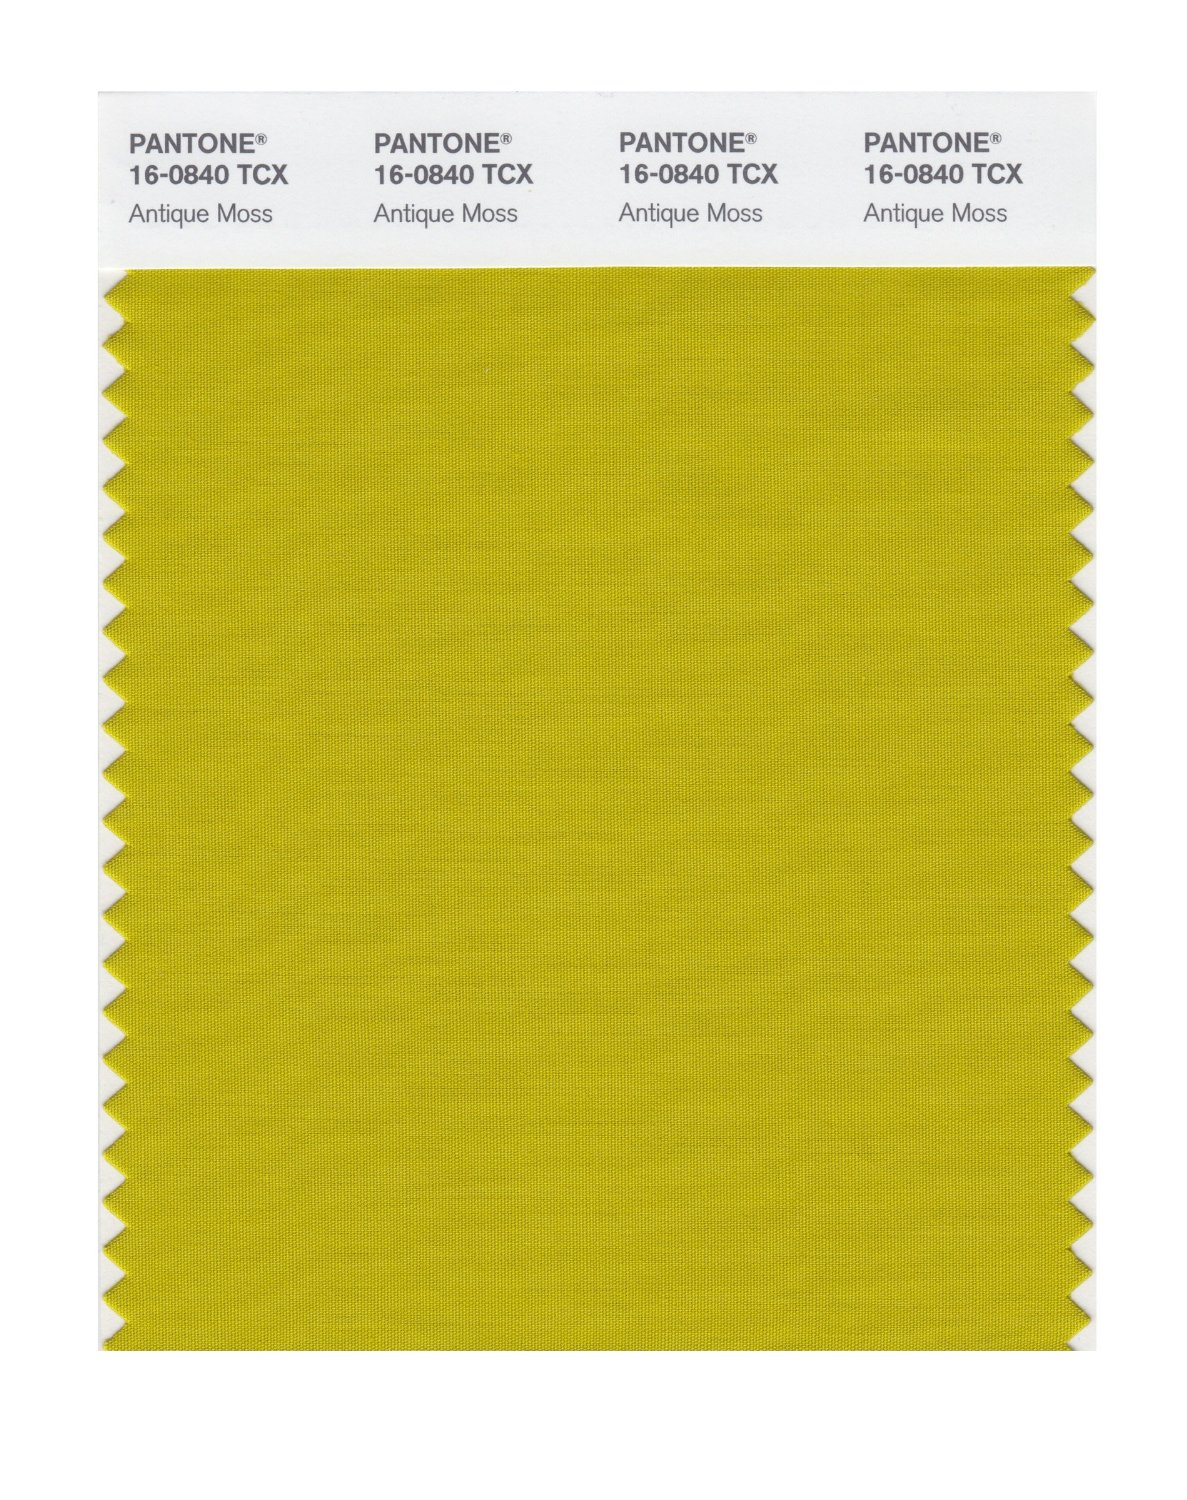 Pantone Smart Swatch 16-0840 Antique Moss